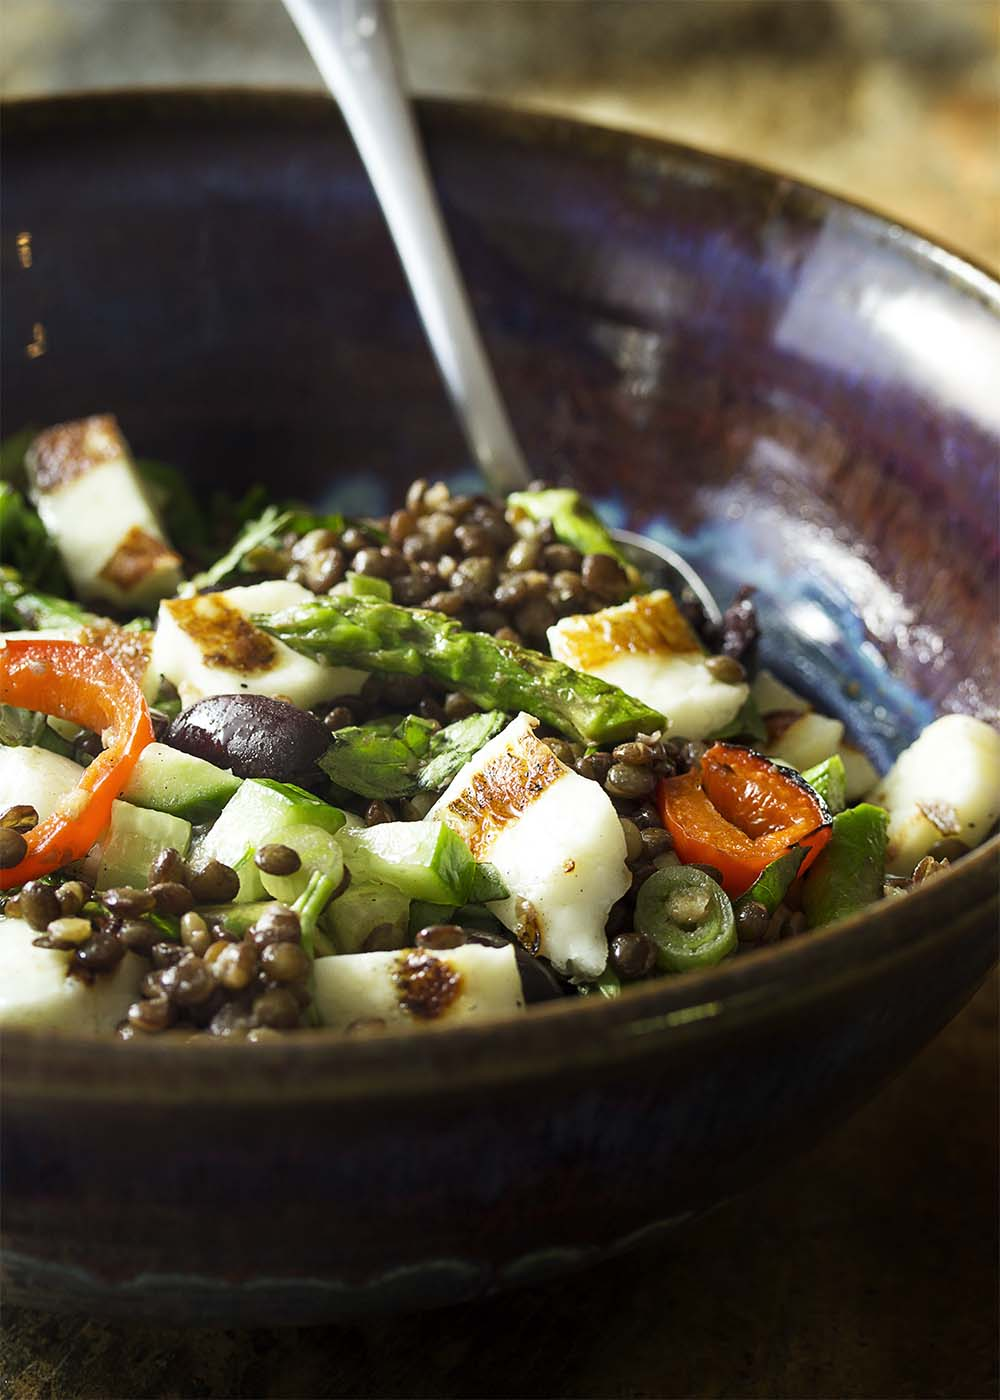 A serving bowl of grilled halloumi and French lentil salad.